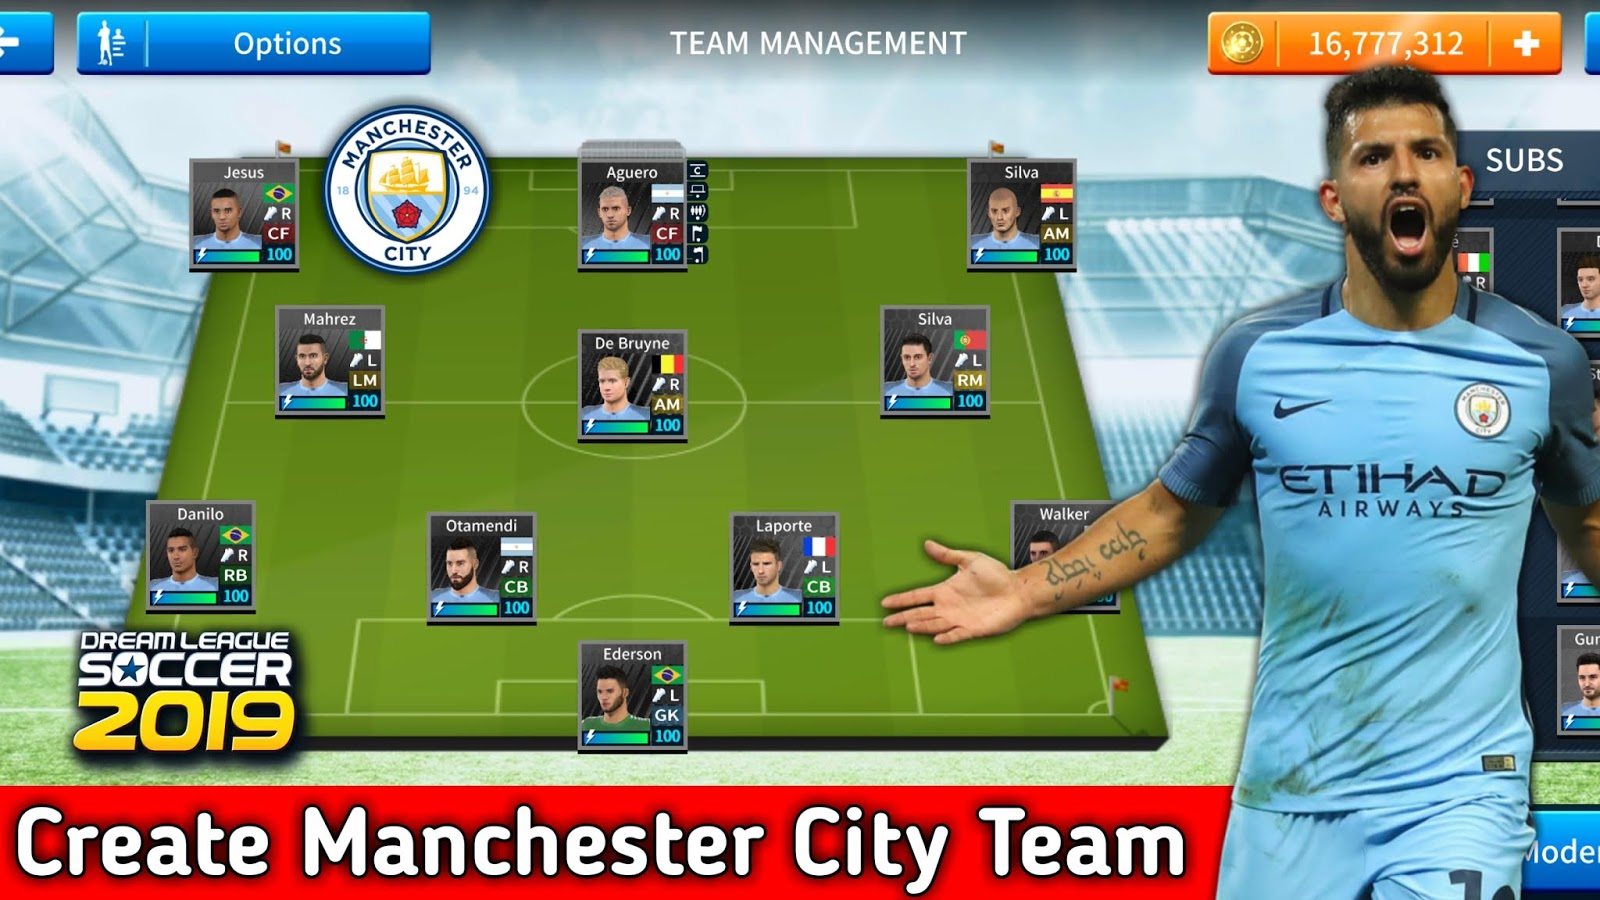 How to create Manchester City Latest team in Dream League Soccer